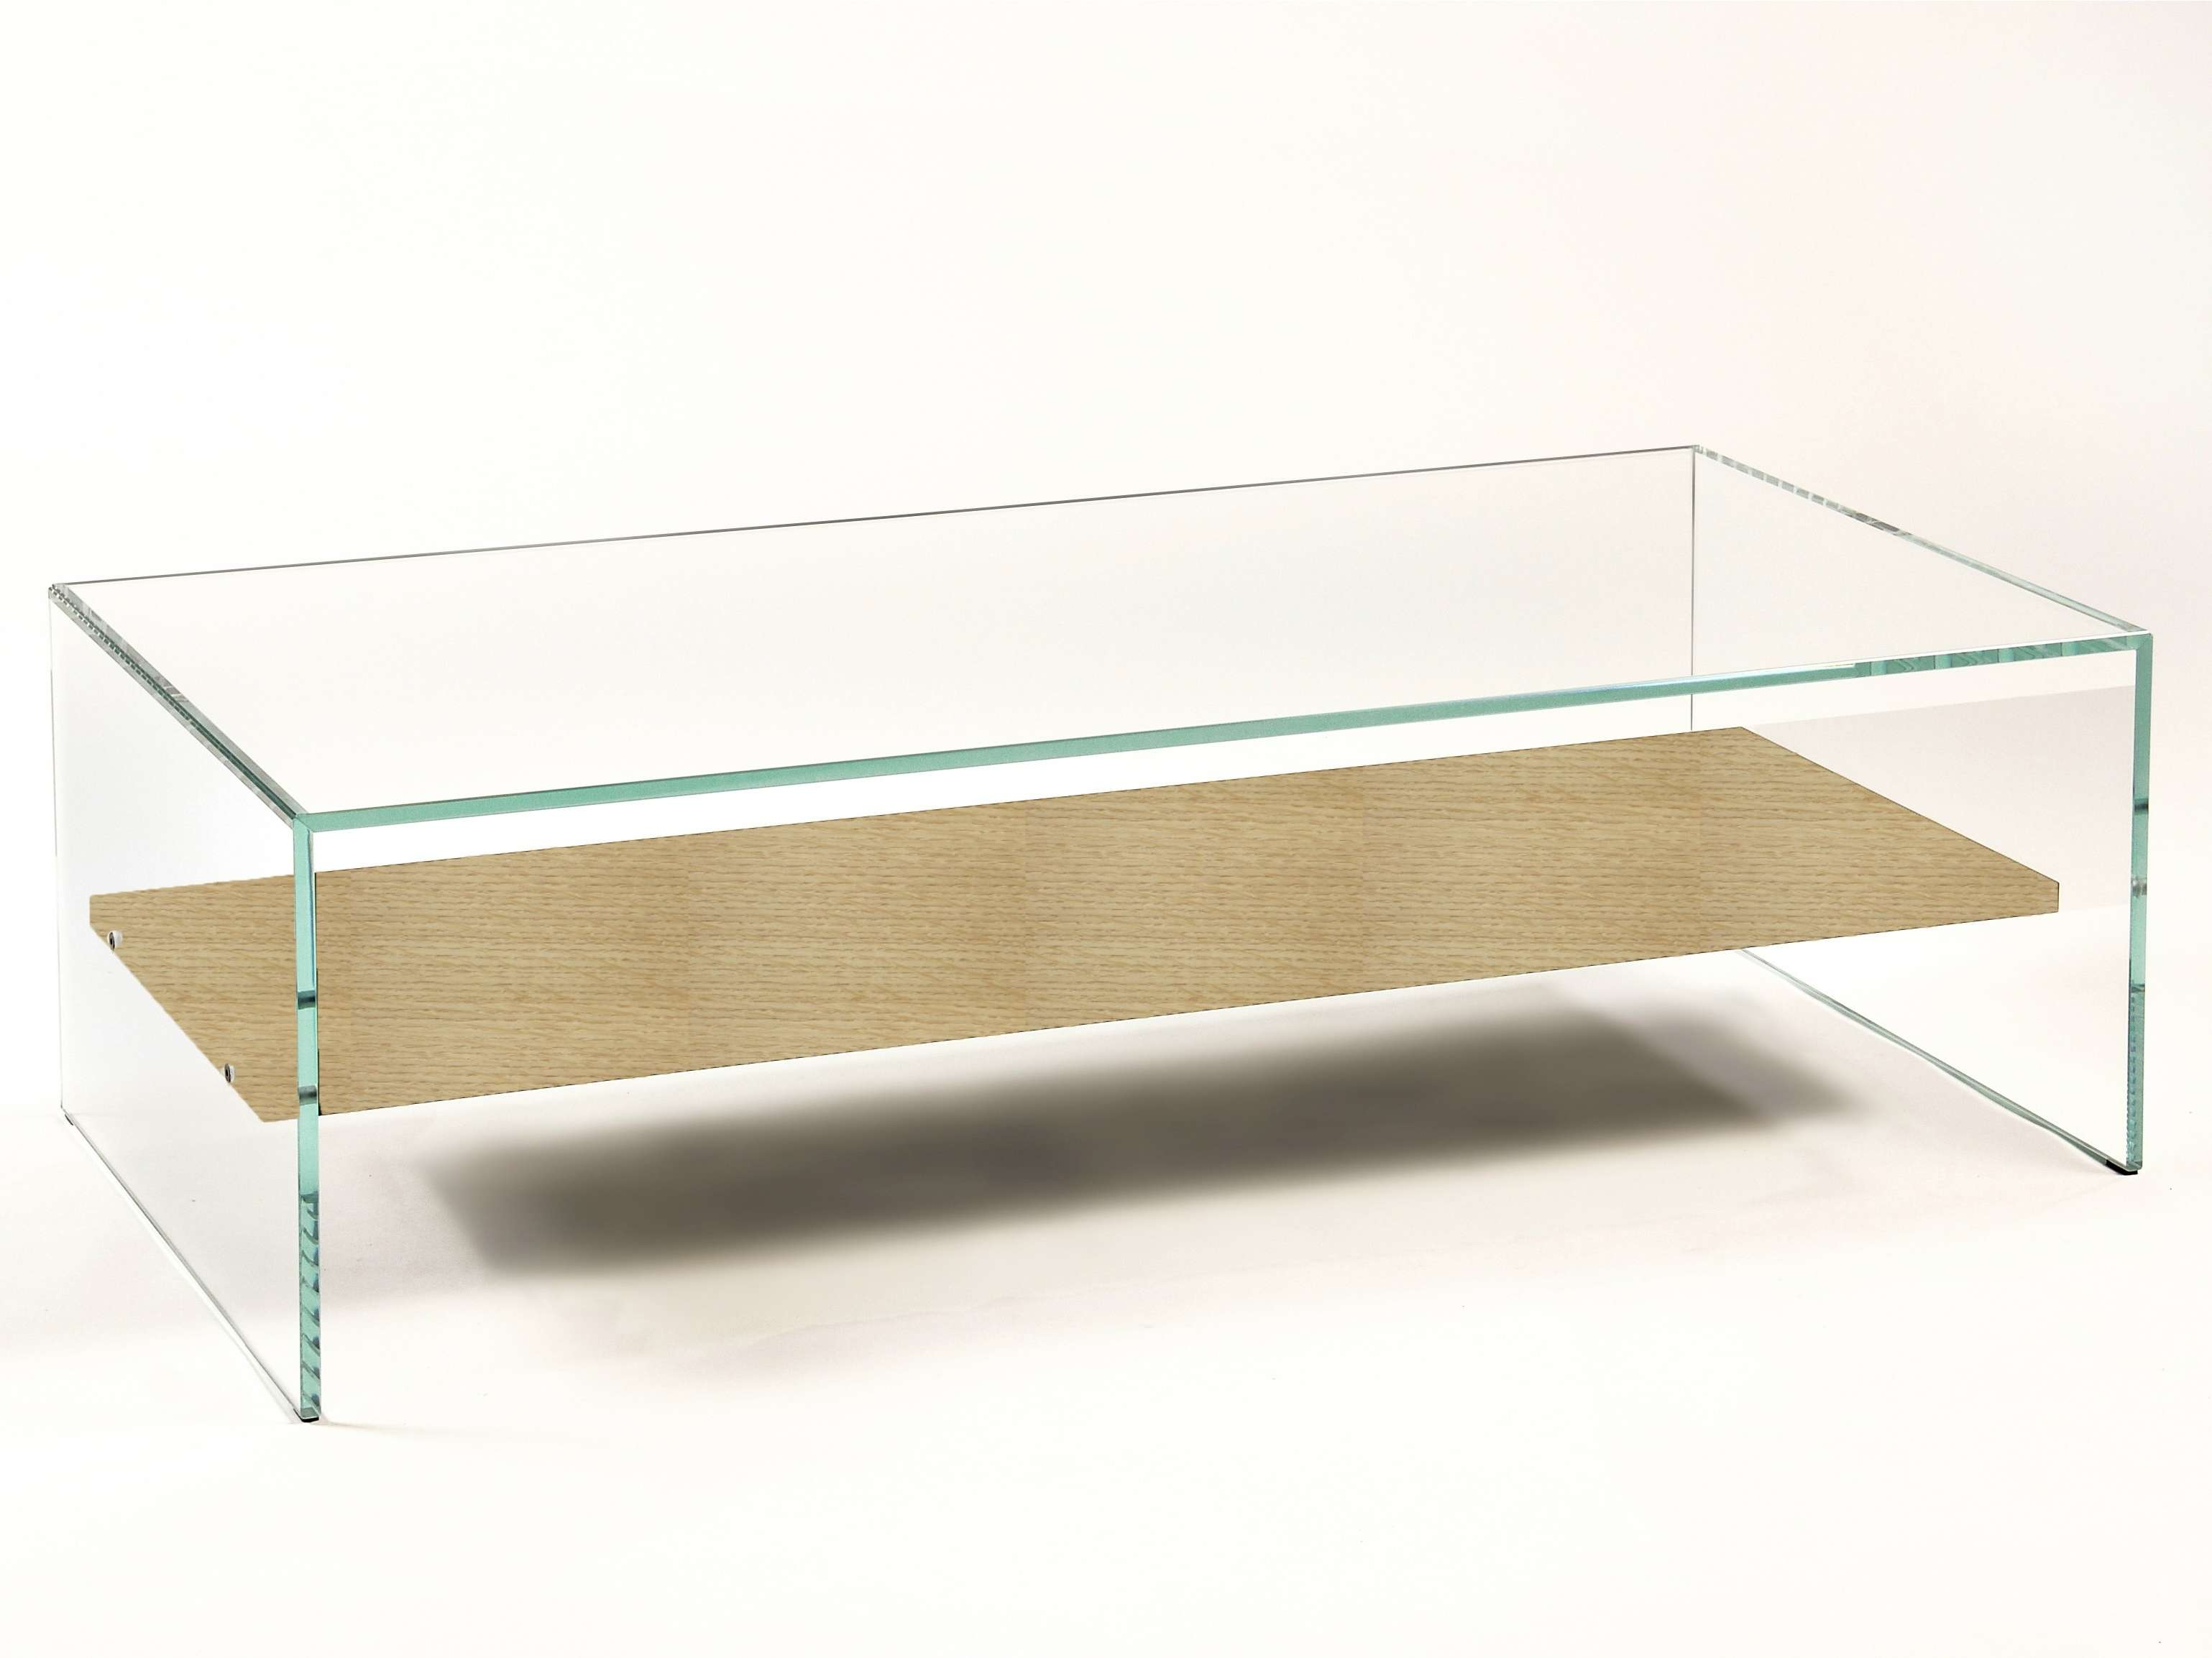 Custom Low Modern Glass Square Coffee Table With Wood Shelves For With Regard To Well Liked Low Coffee Tables With Storage (View 10 of 20)